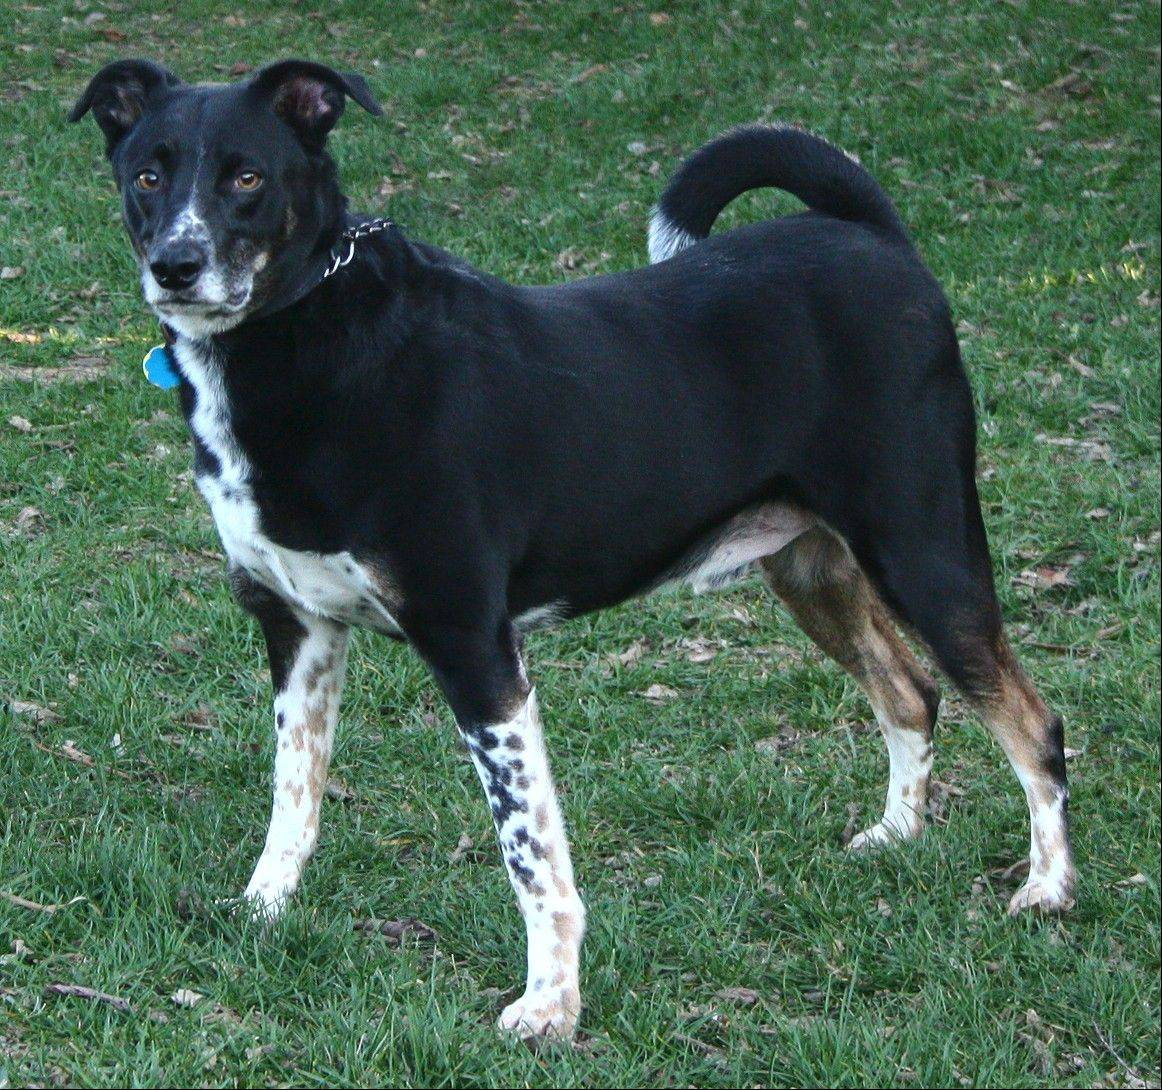 Flipps, a male, cattle dog mix, is about 7 years old and weighs 59 pounds. Flipps needs a forever home.